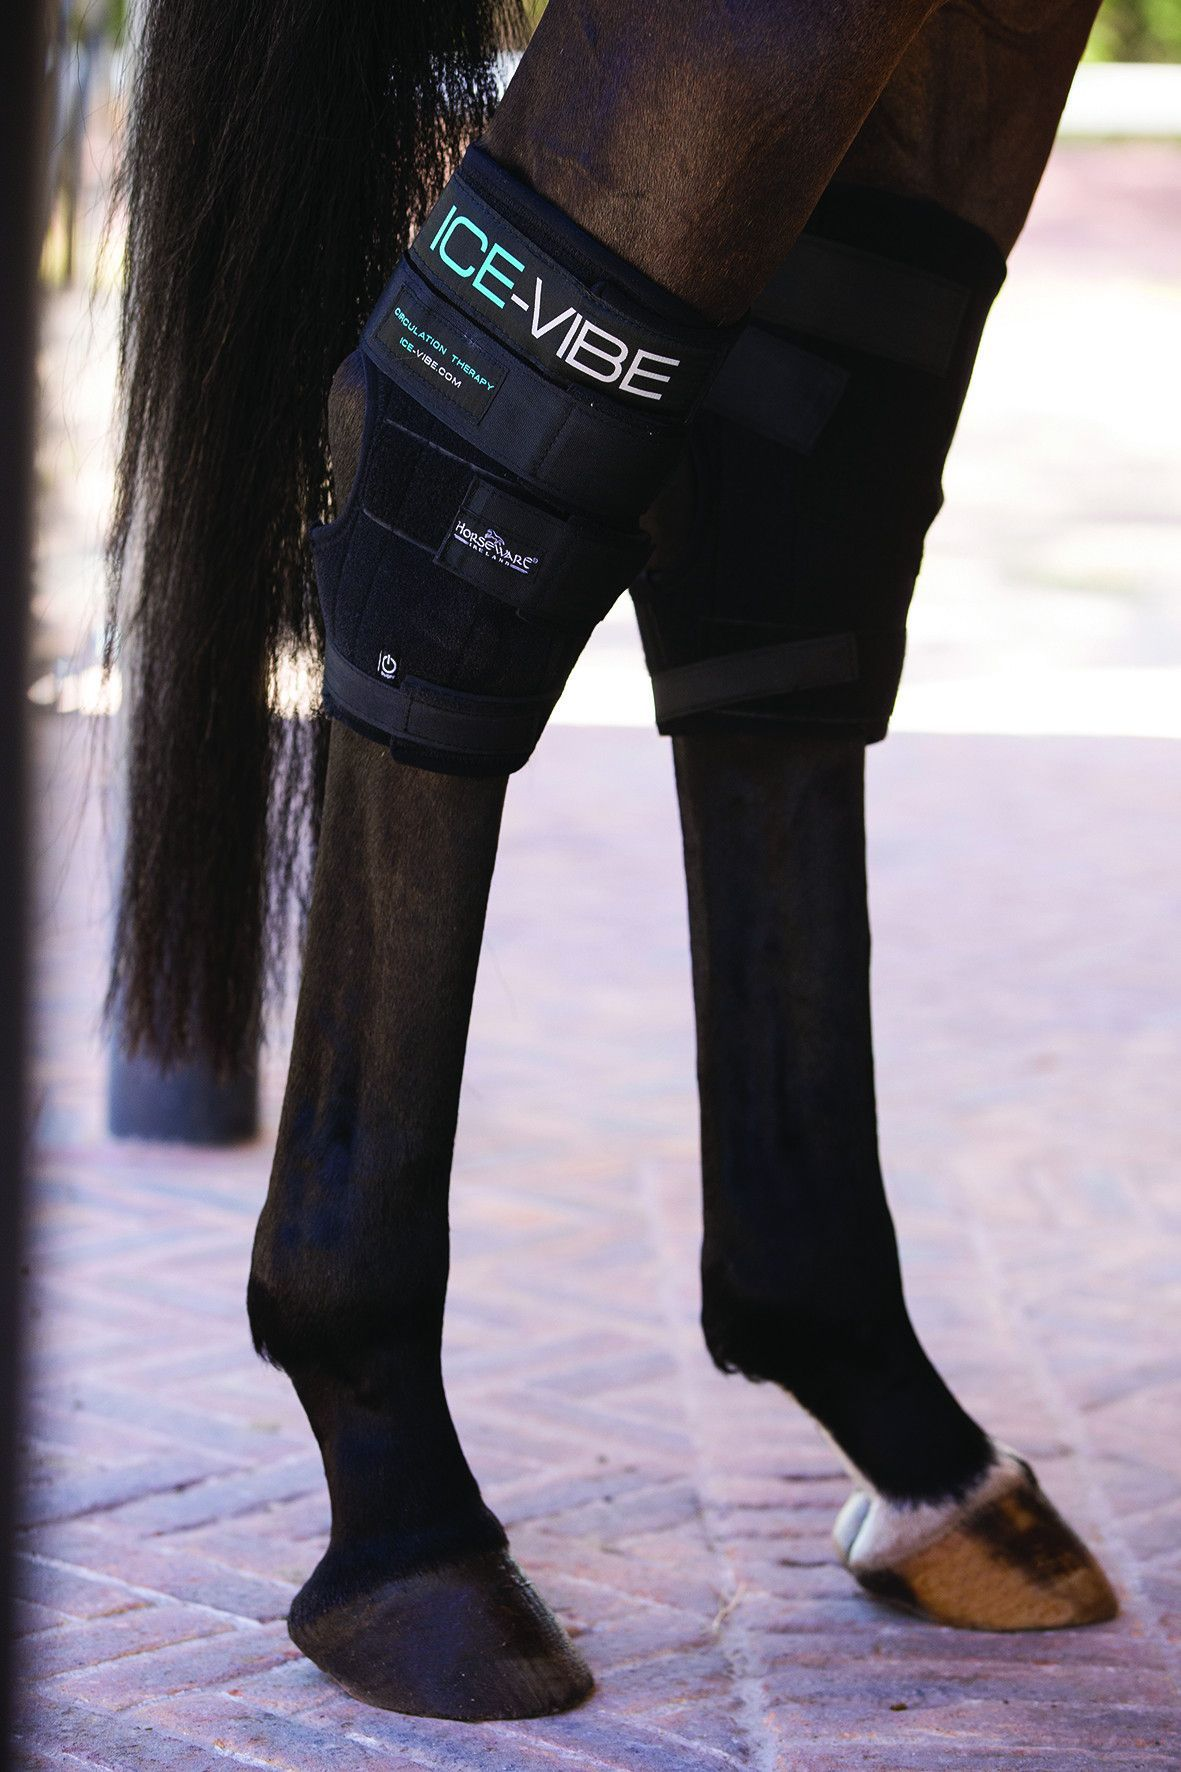 Ice vibe hock boot horse boots riding outfit clothes horse